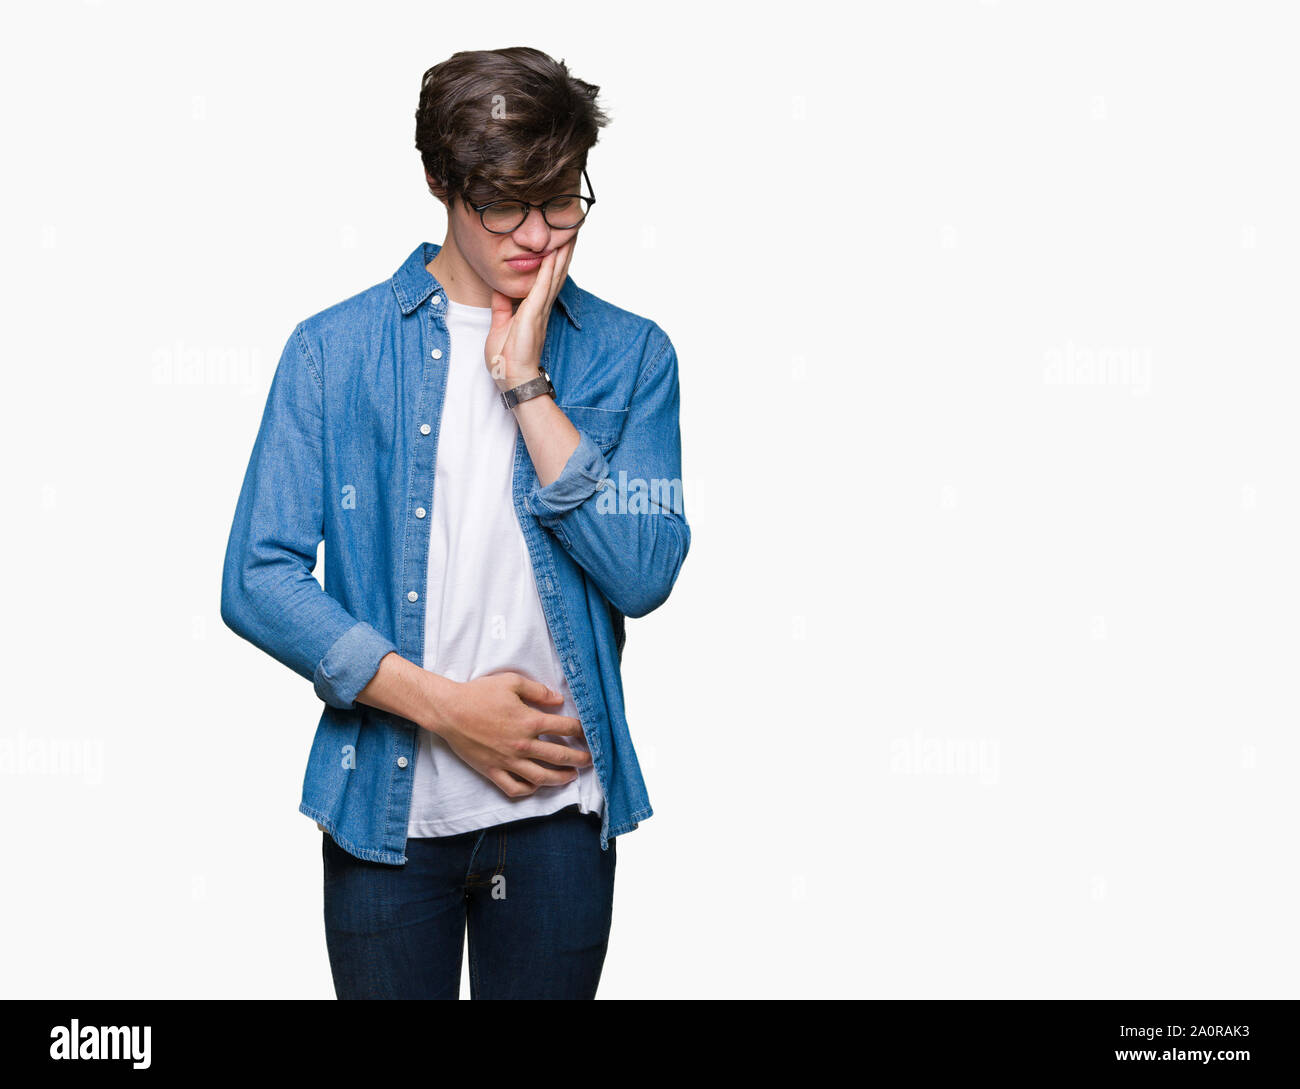 Young handsome man wearing glasses over isolated background thinking looking tired and bored with depression problems with crossed arms. Stock Photo